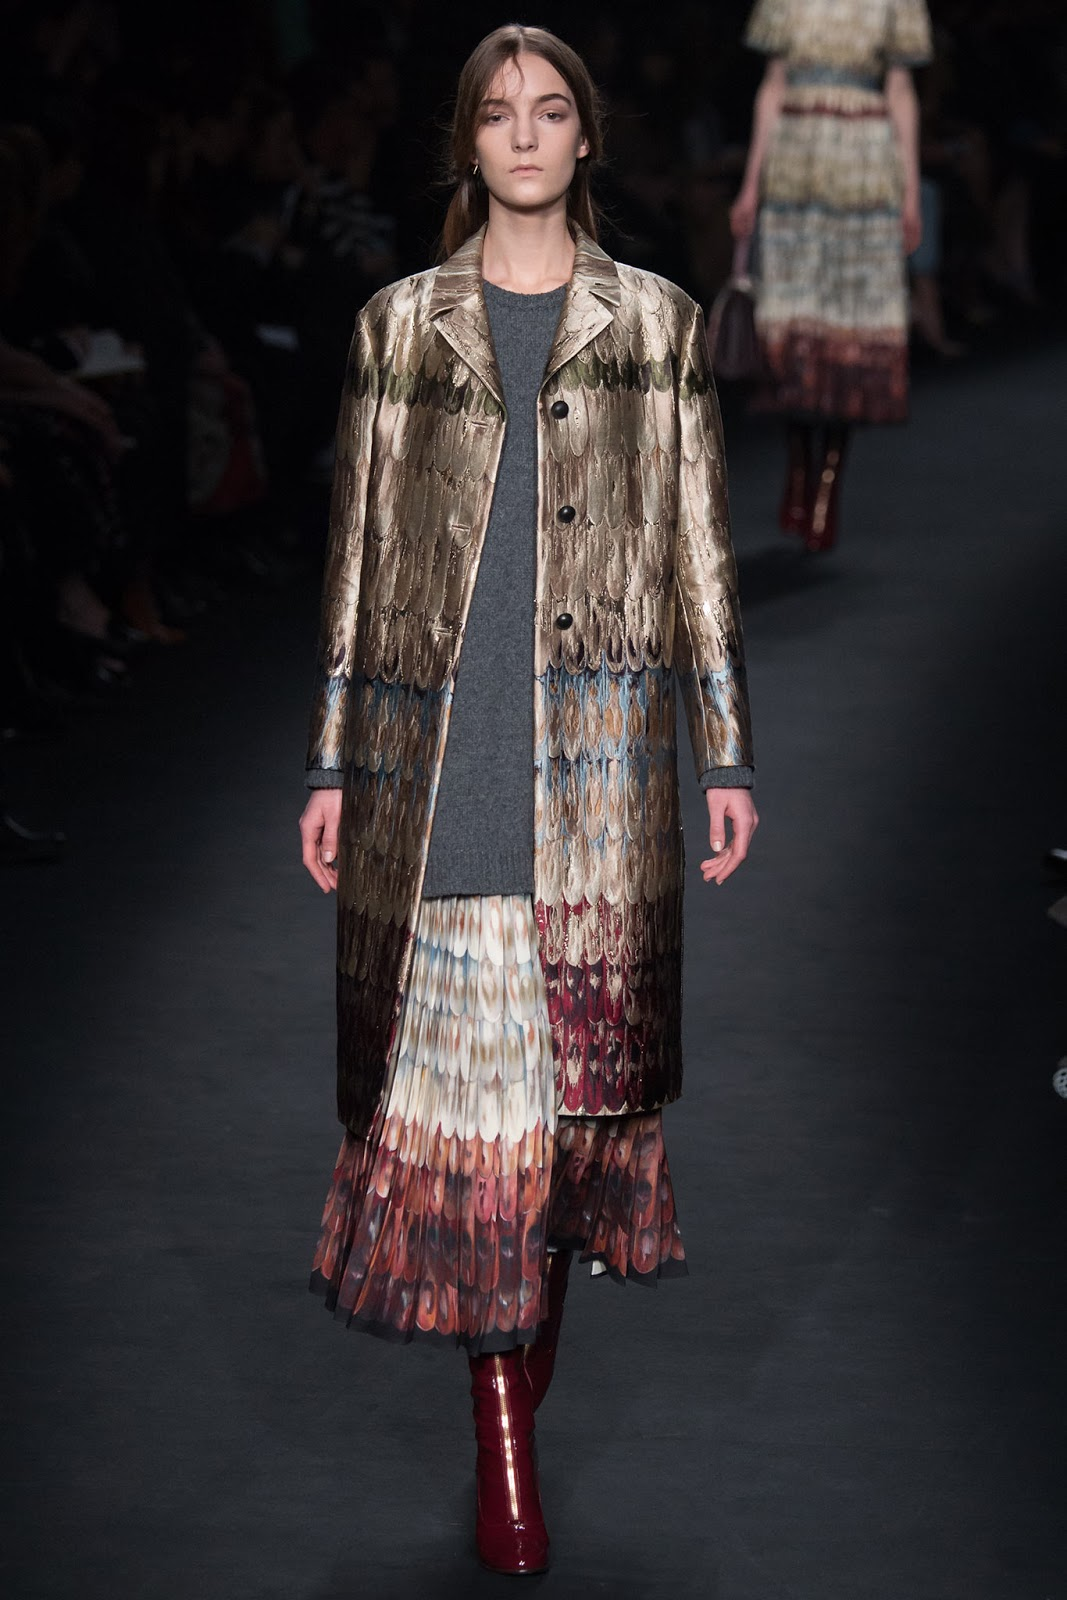 Brocade trend on AW 2015 runway at Valentino / via www.fashionedbylove.co.uk